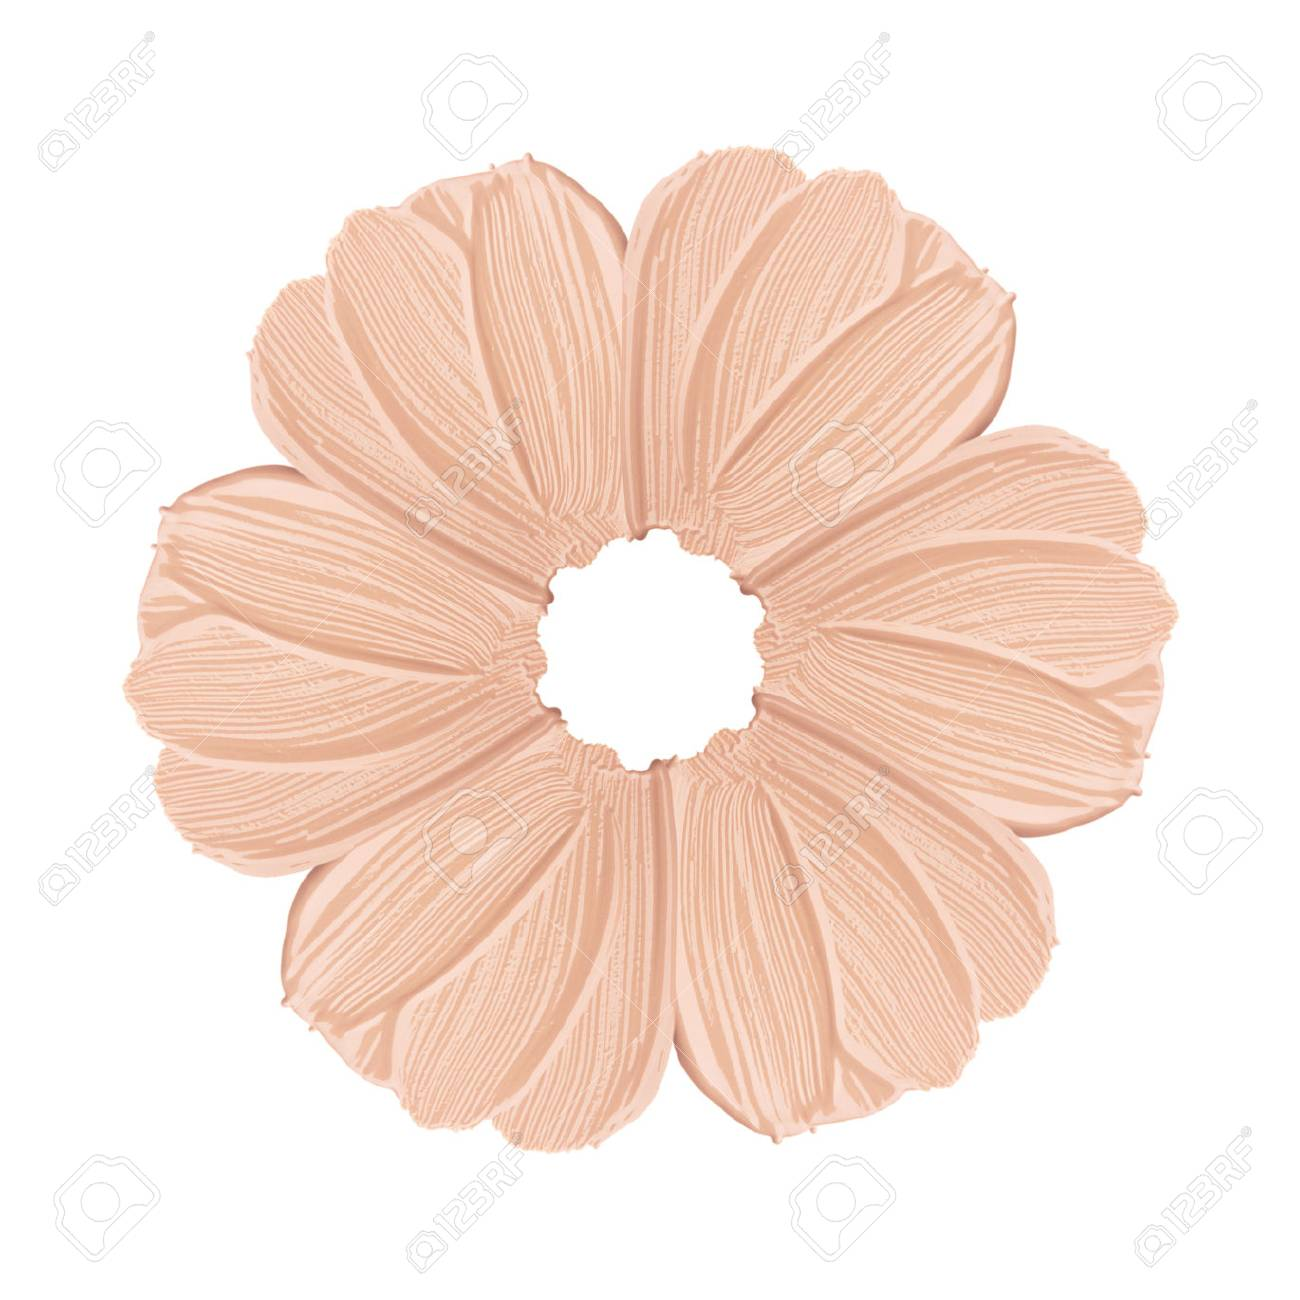 Smears of foundation for face. Conceptual flower from concealer smears. Isolated on white background - 82771706